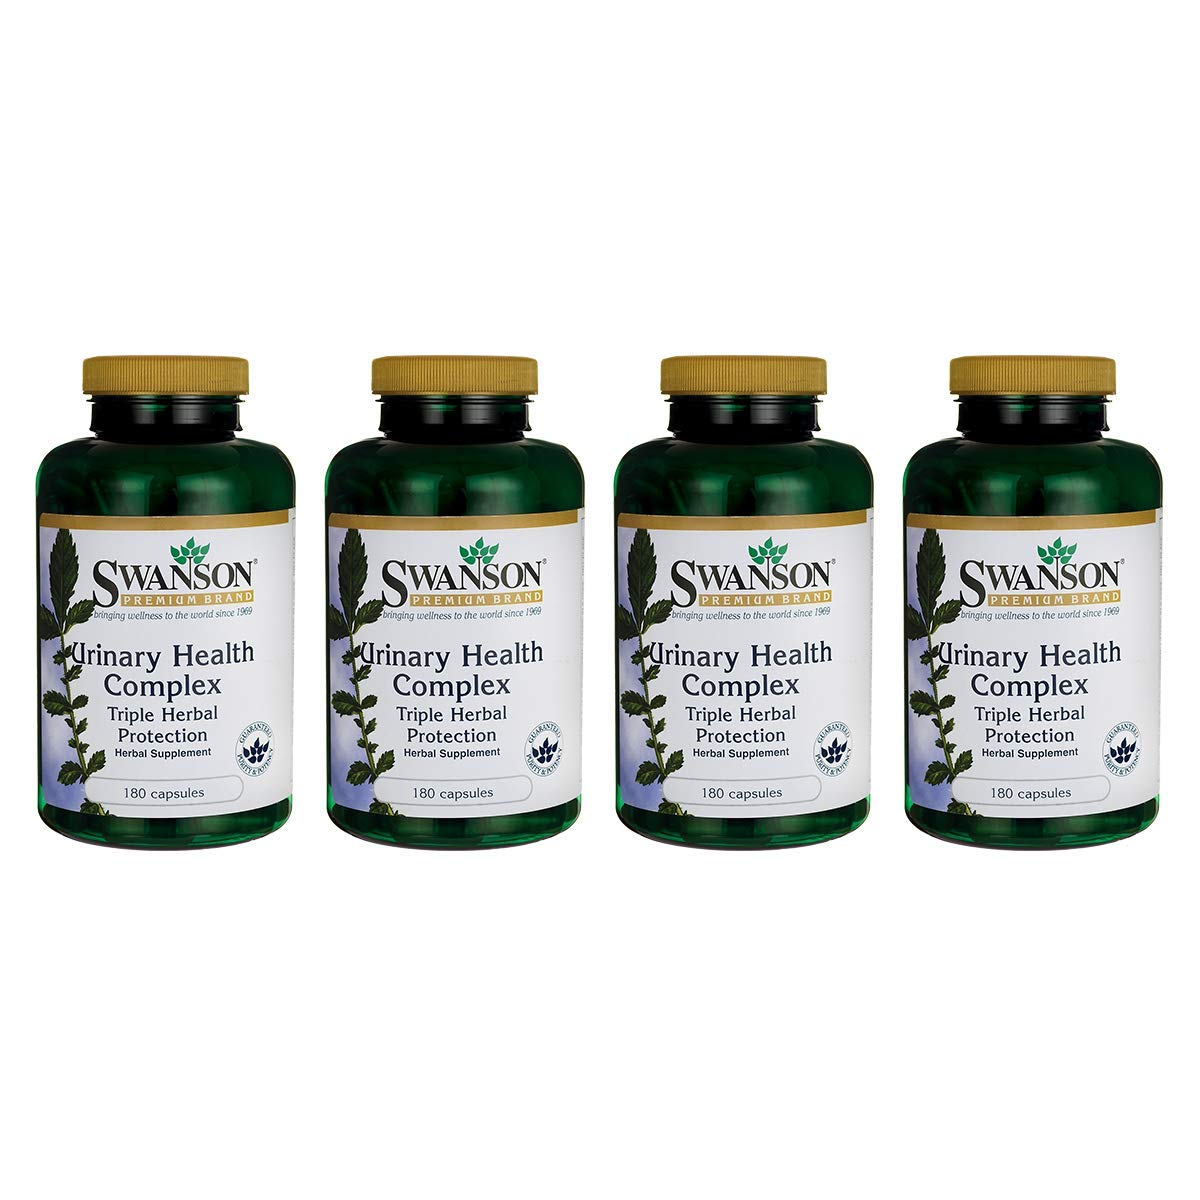 Swanson Urinary Health Complex Triple Herbal Protection 180 Capsules (4 Pack) by Swanson